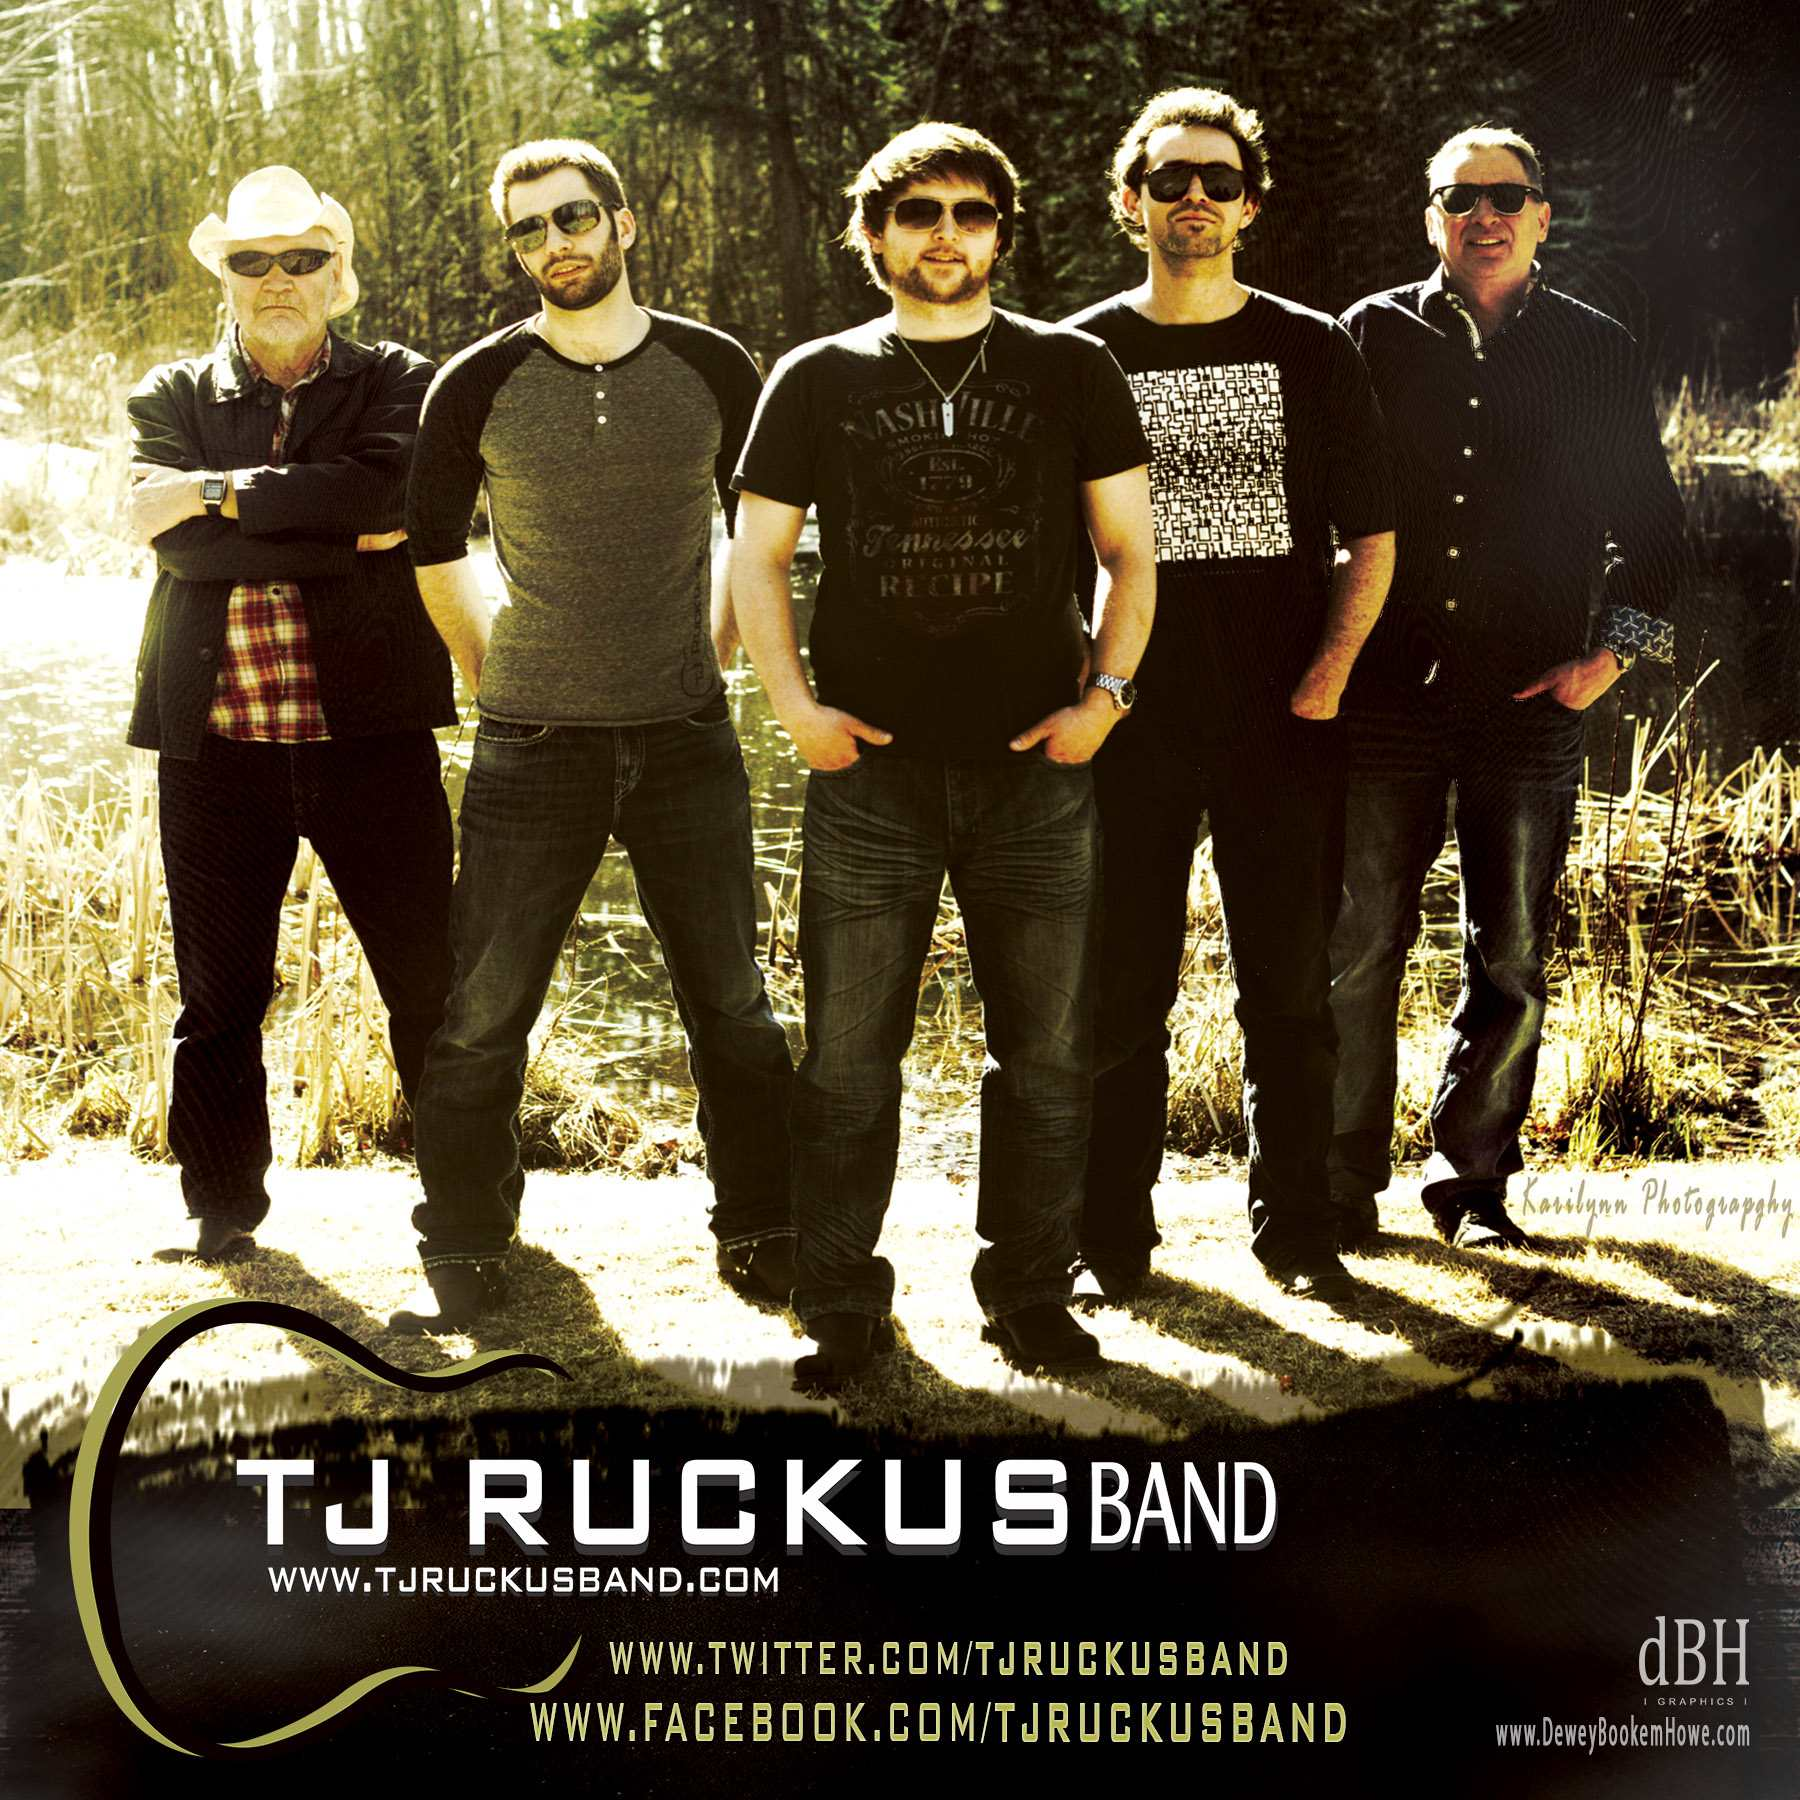 TJ Ruckus Band - default icon